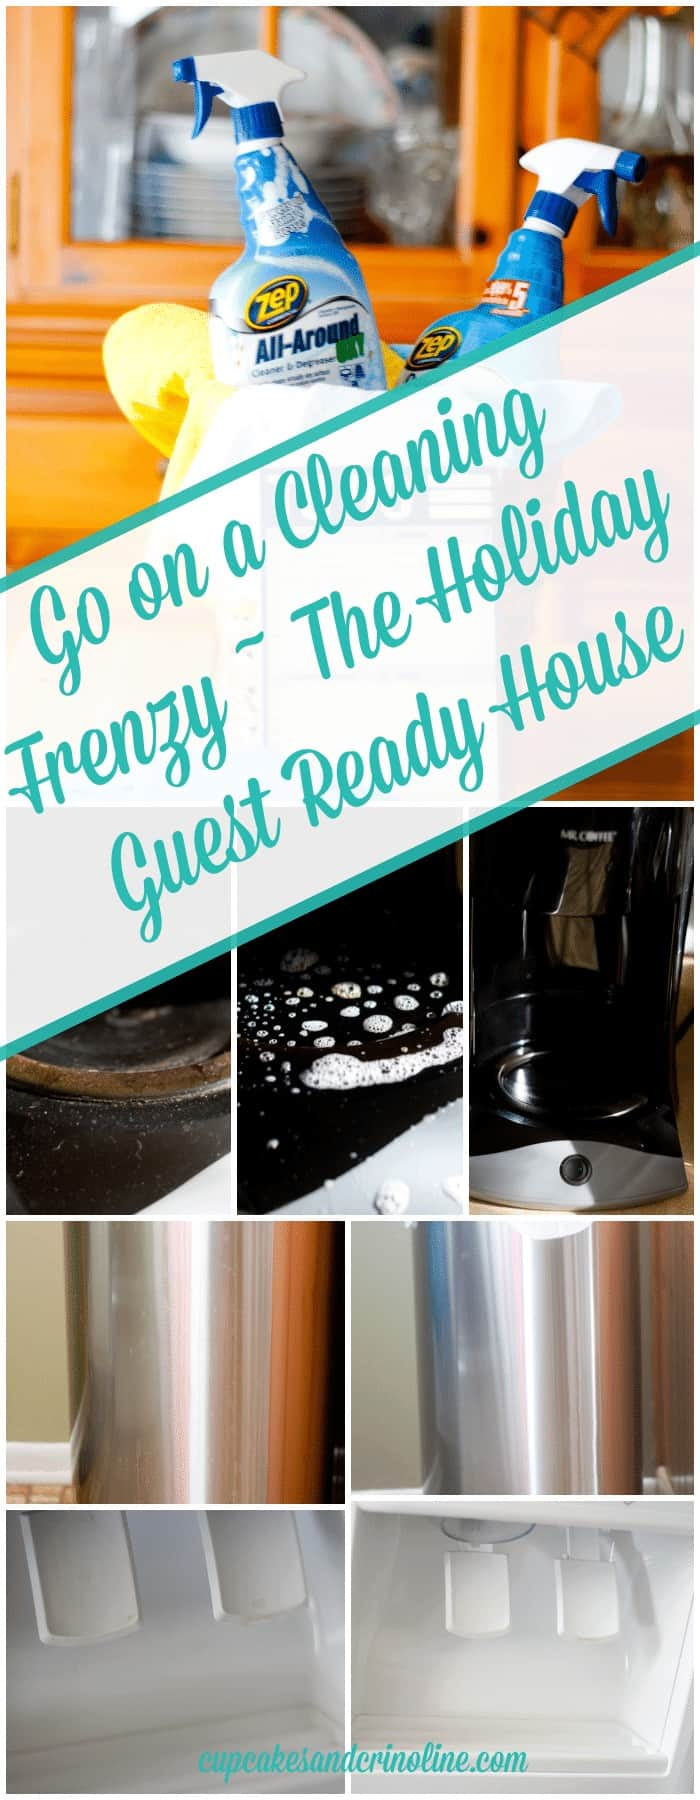 Go on a Cleaning Frenzy ~ the Holiday Guest Ready House #TryZep cupcakesandcrinoline.com